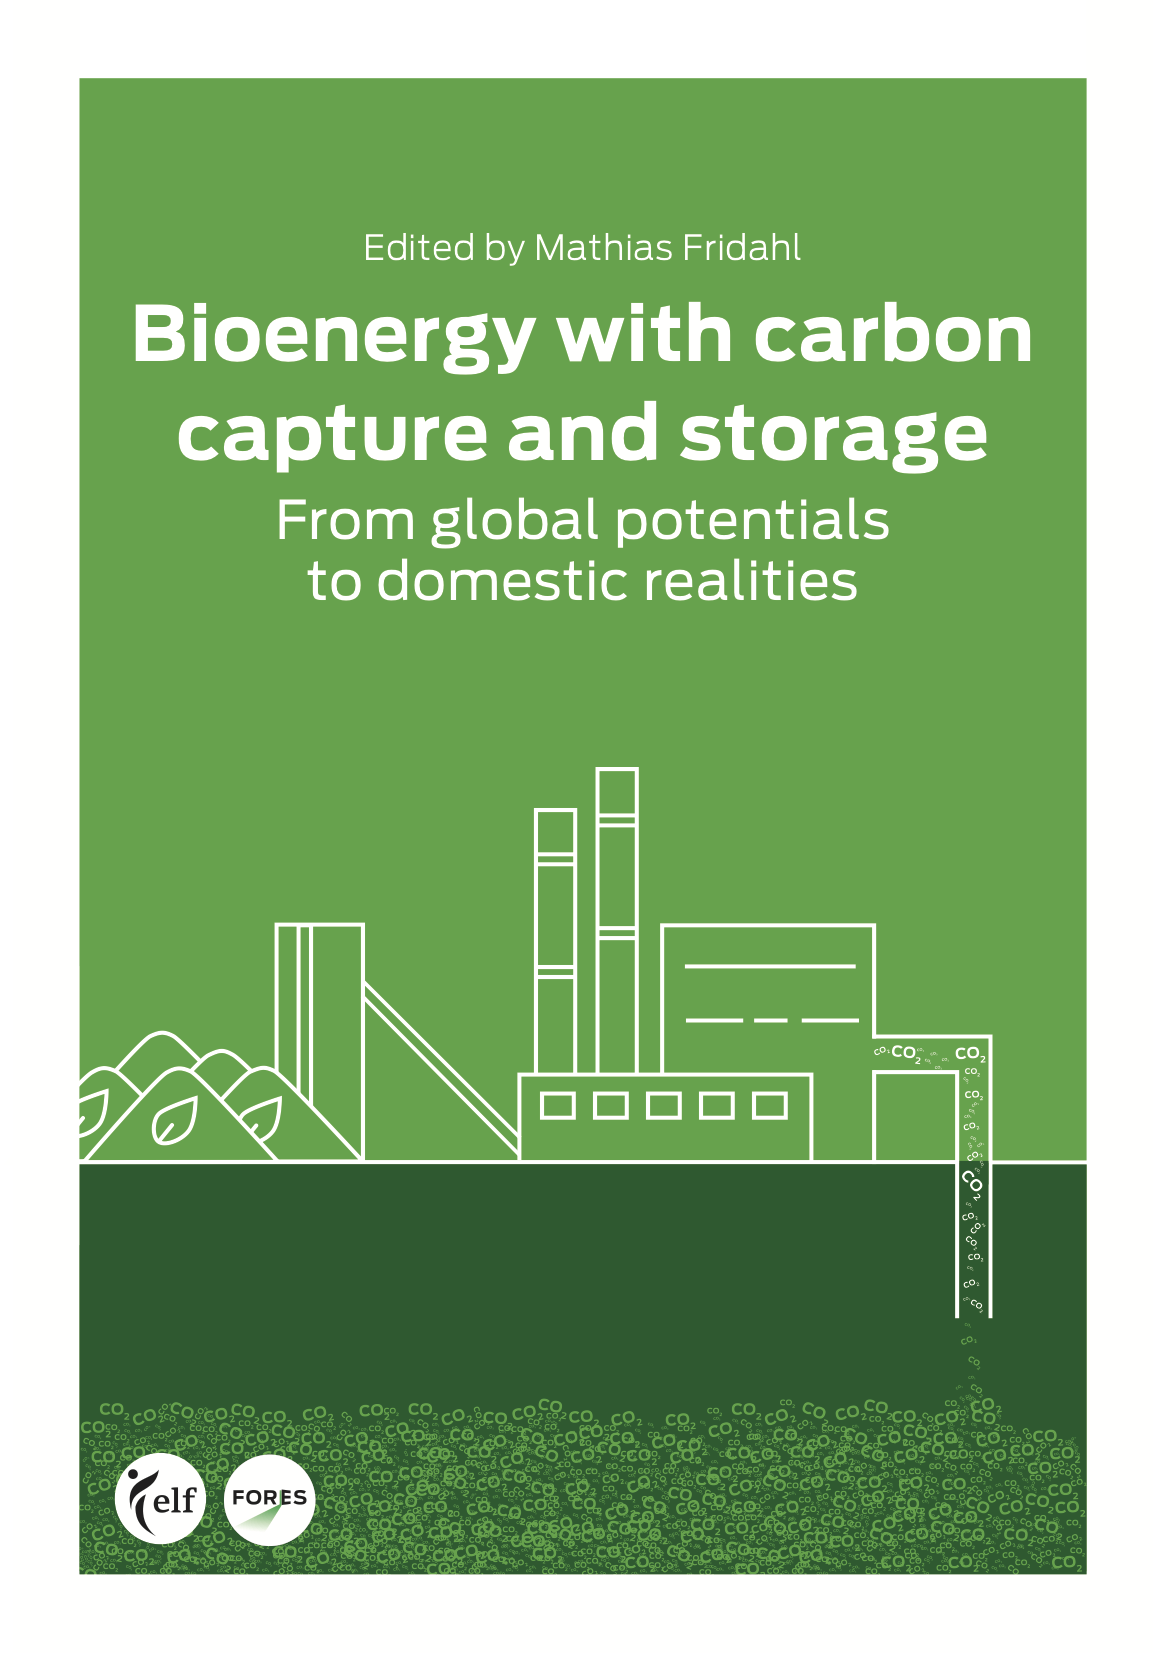 Bioenergy with carbon capture and storage